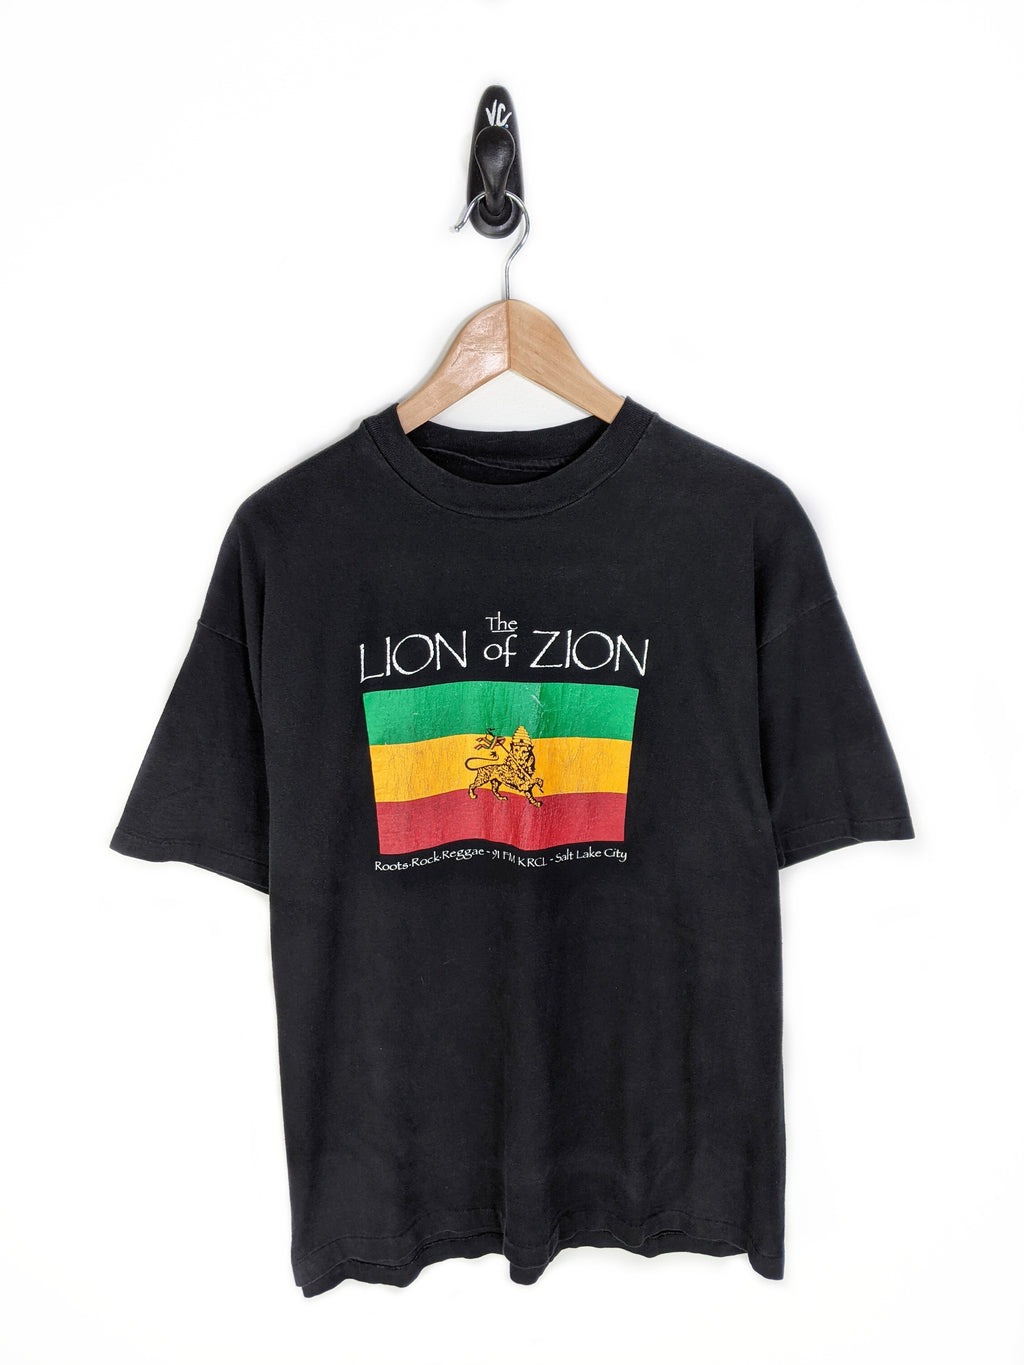 Lion of Zion Tee (XL)